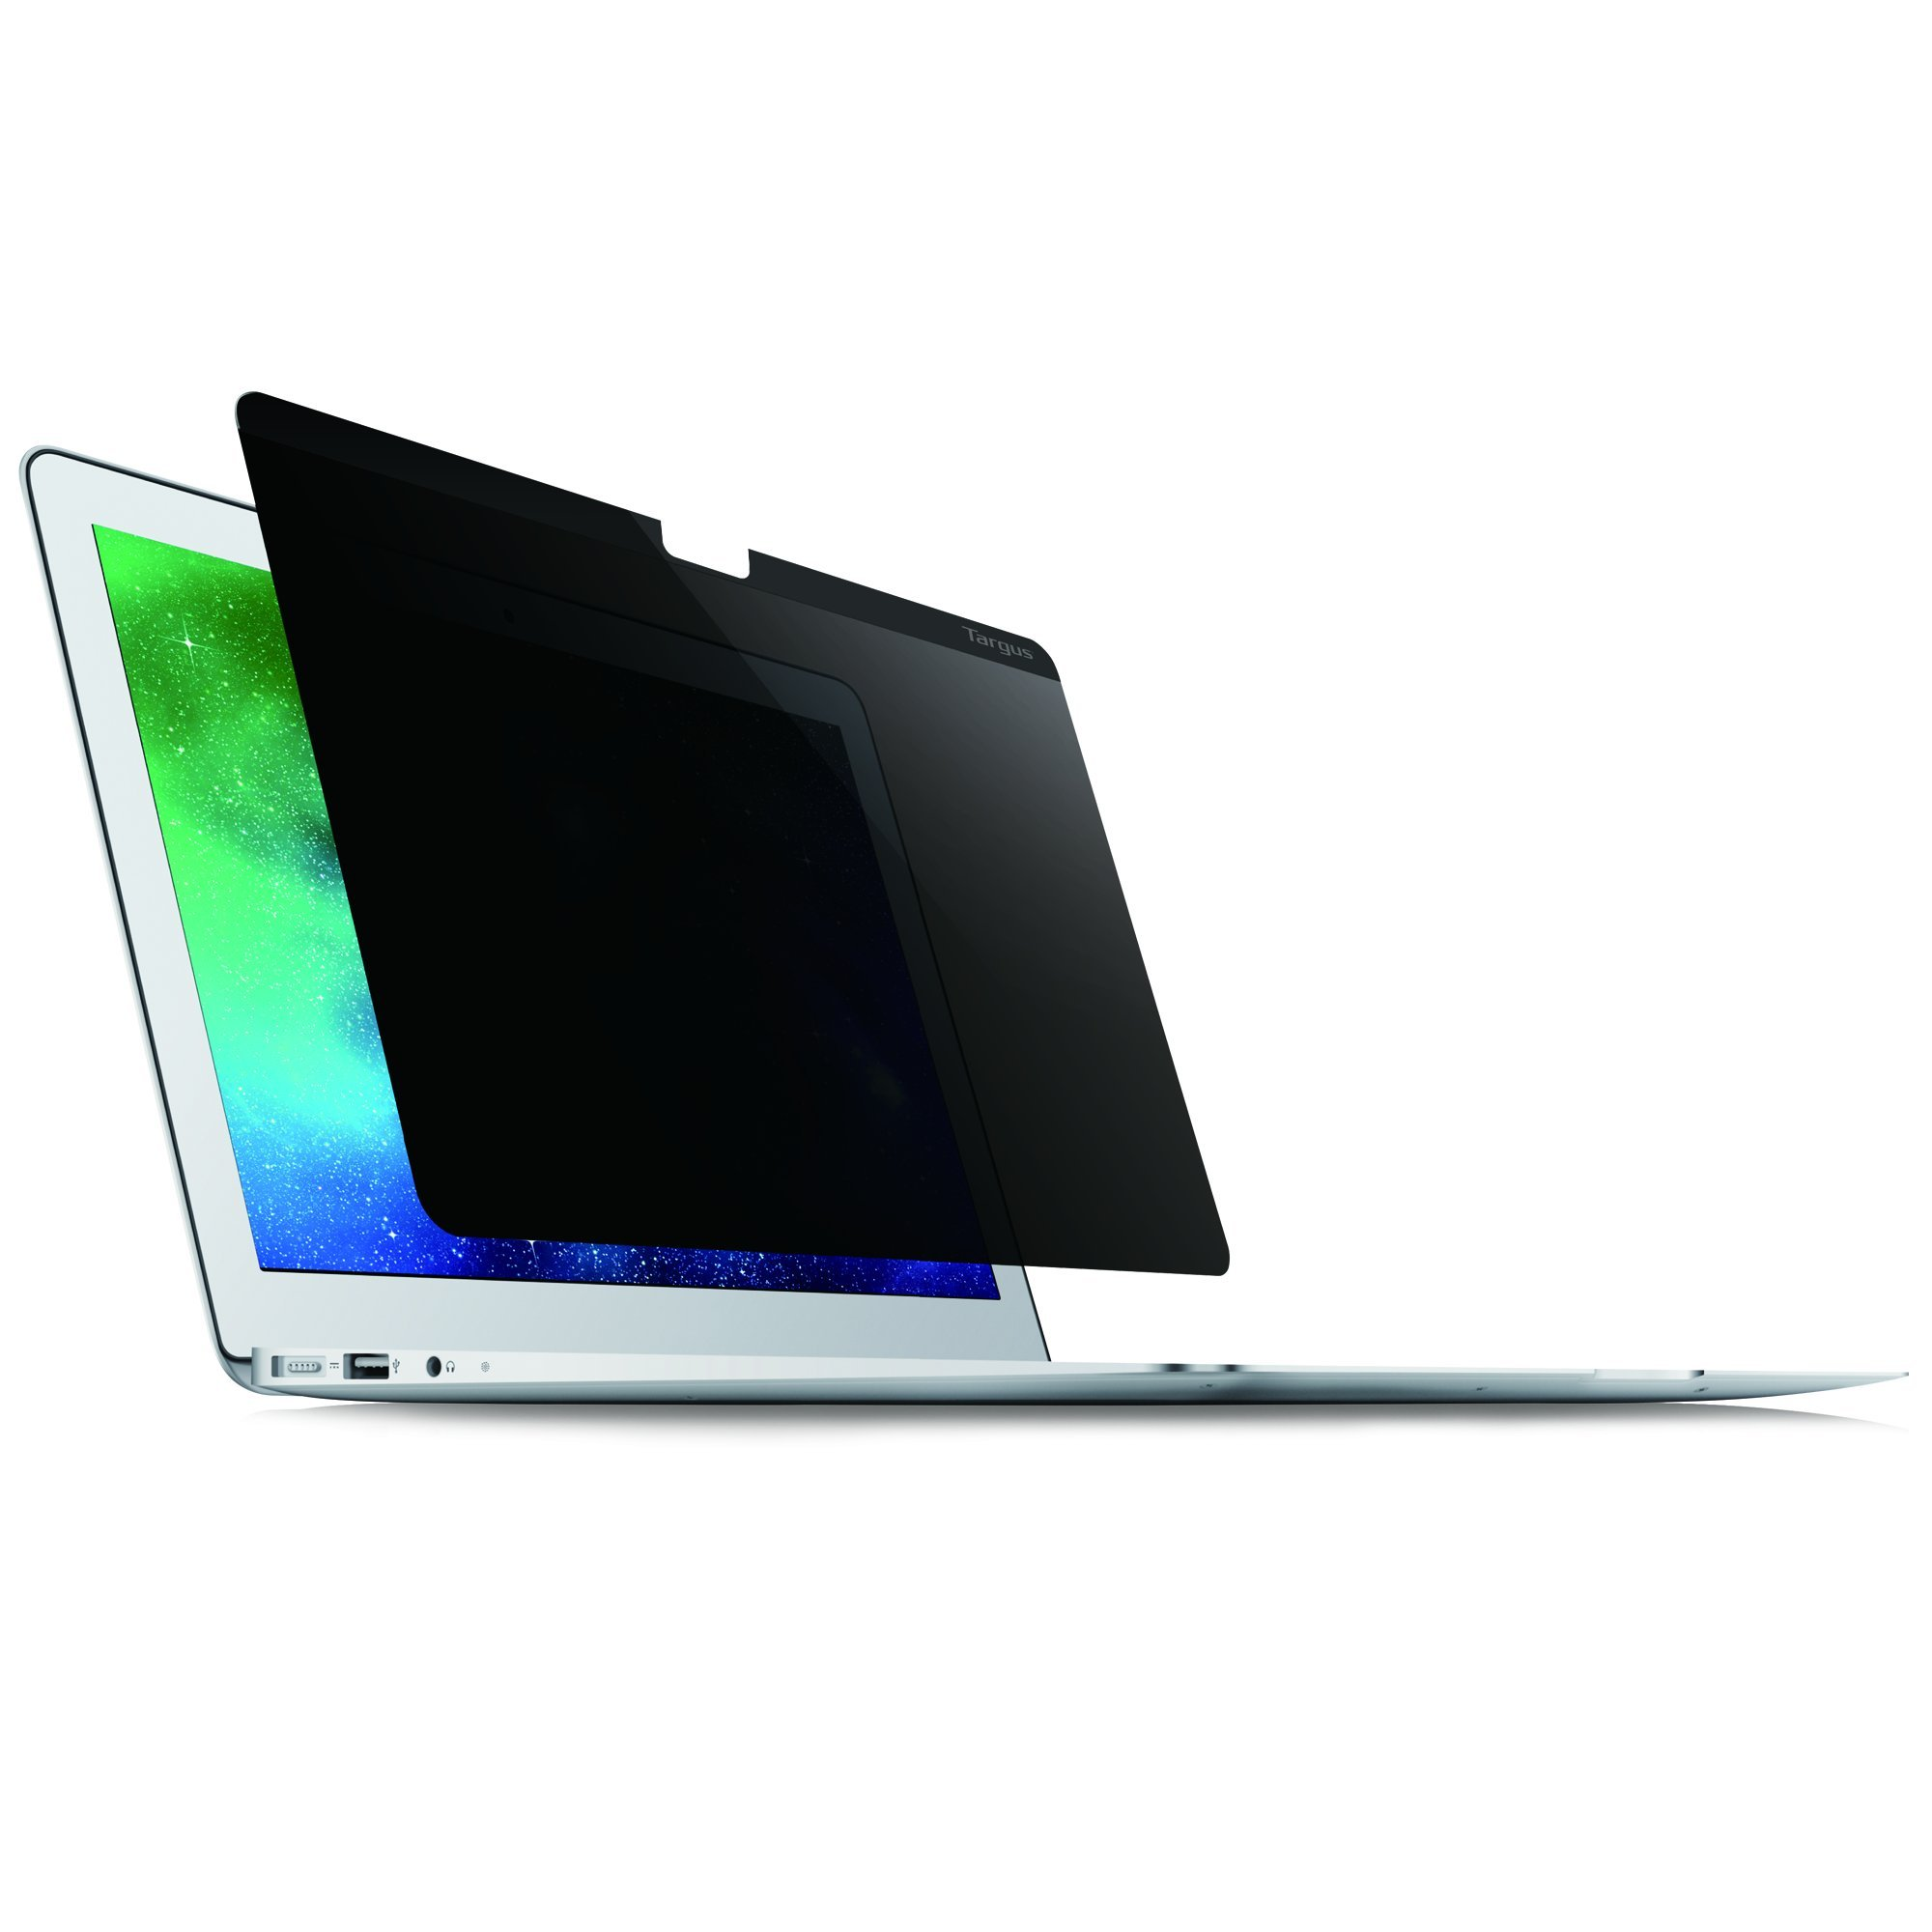 Targus Magnetic Privacy Screen for MacBook Pro 15-inch (2017) and MacBook Pro 15-inch (2016) (ASM154MBP6GL)